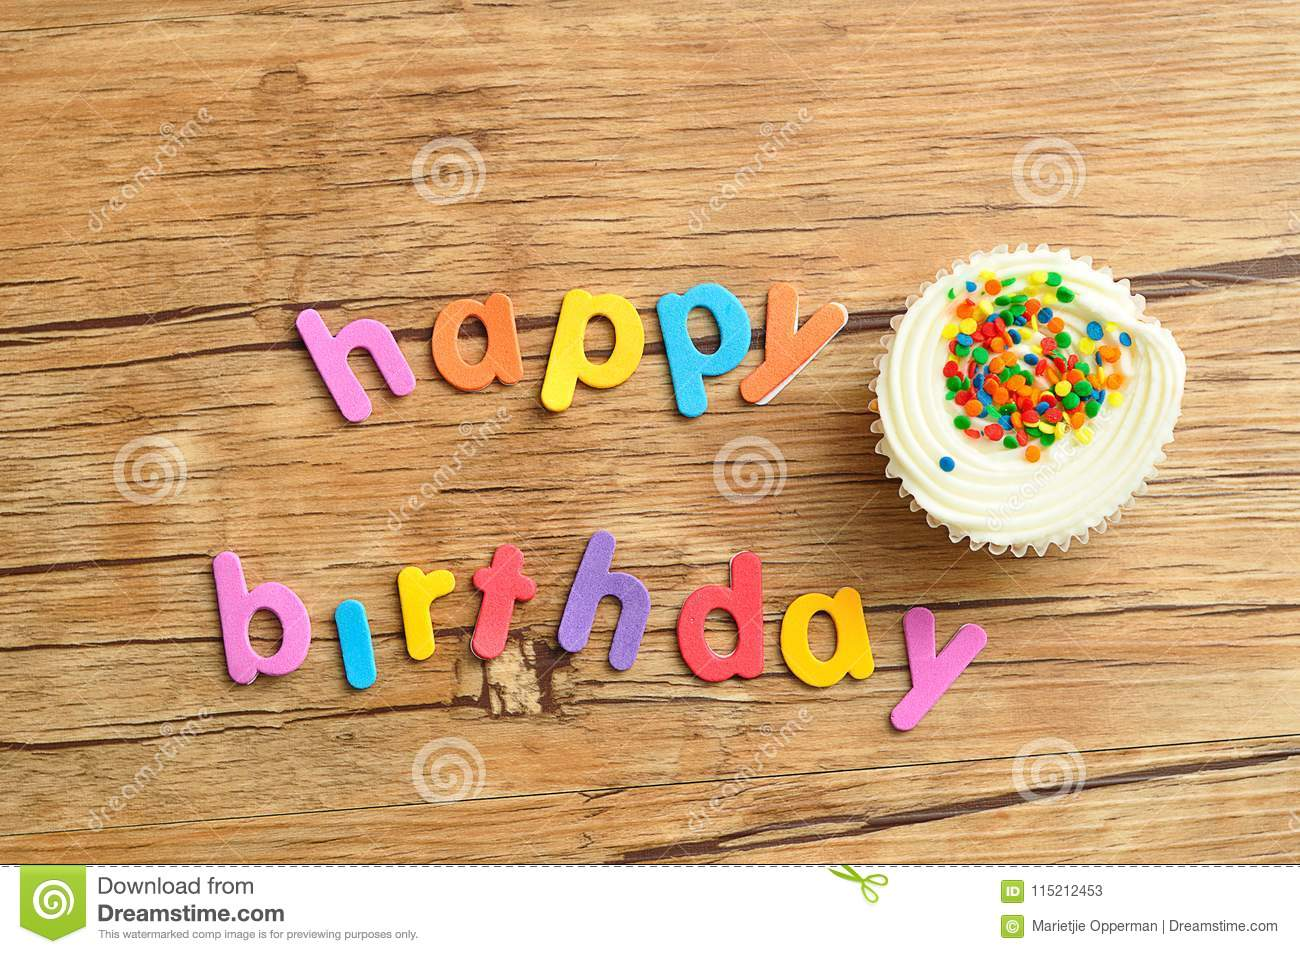 download happy birthday in colorful letters with a white cupcake stock image image of letter